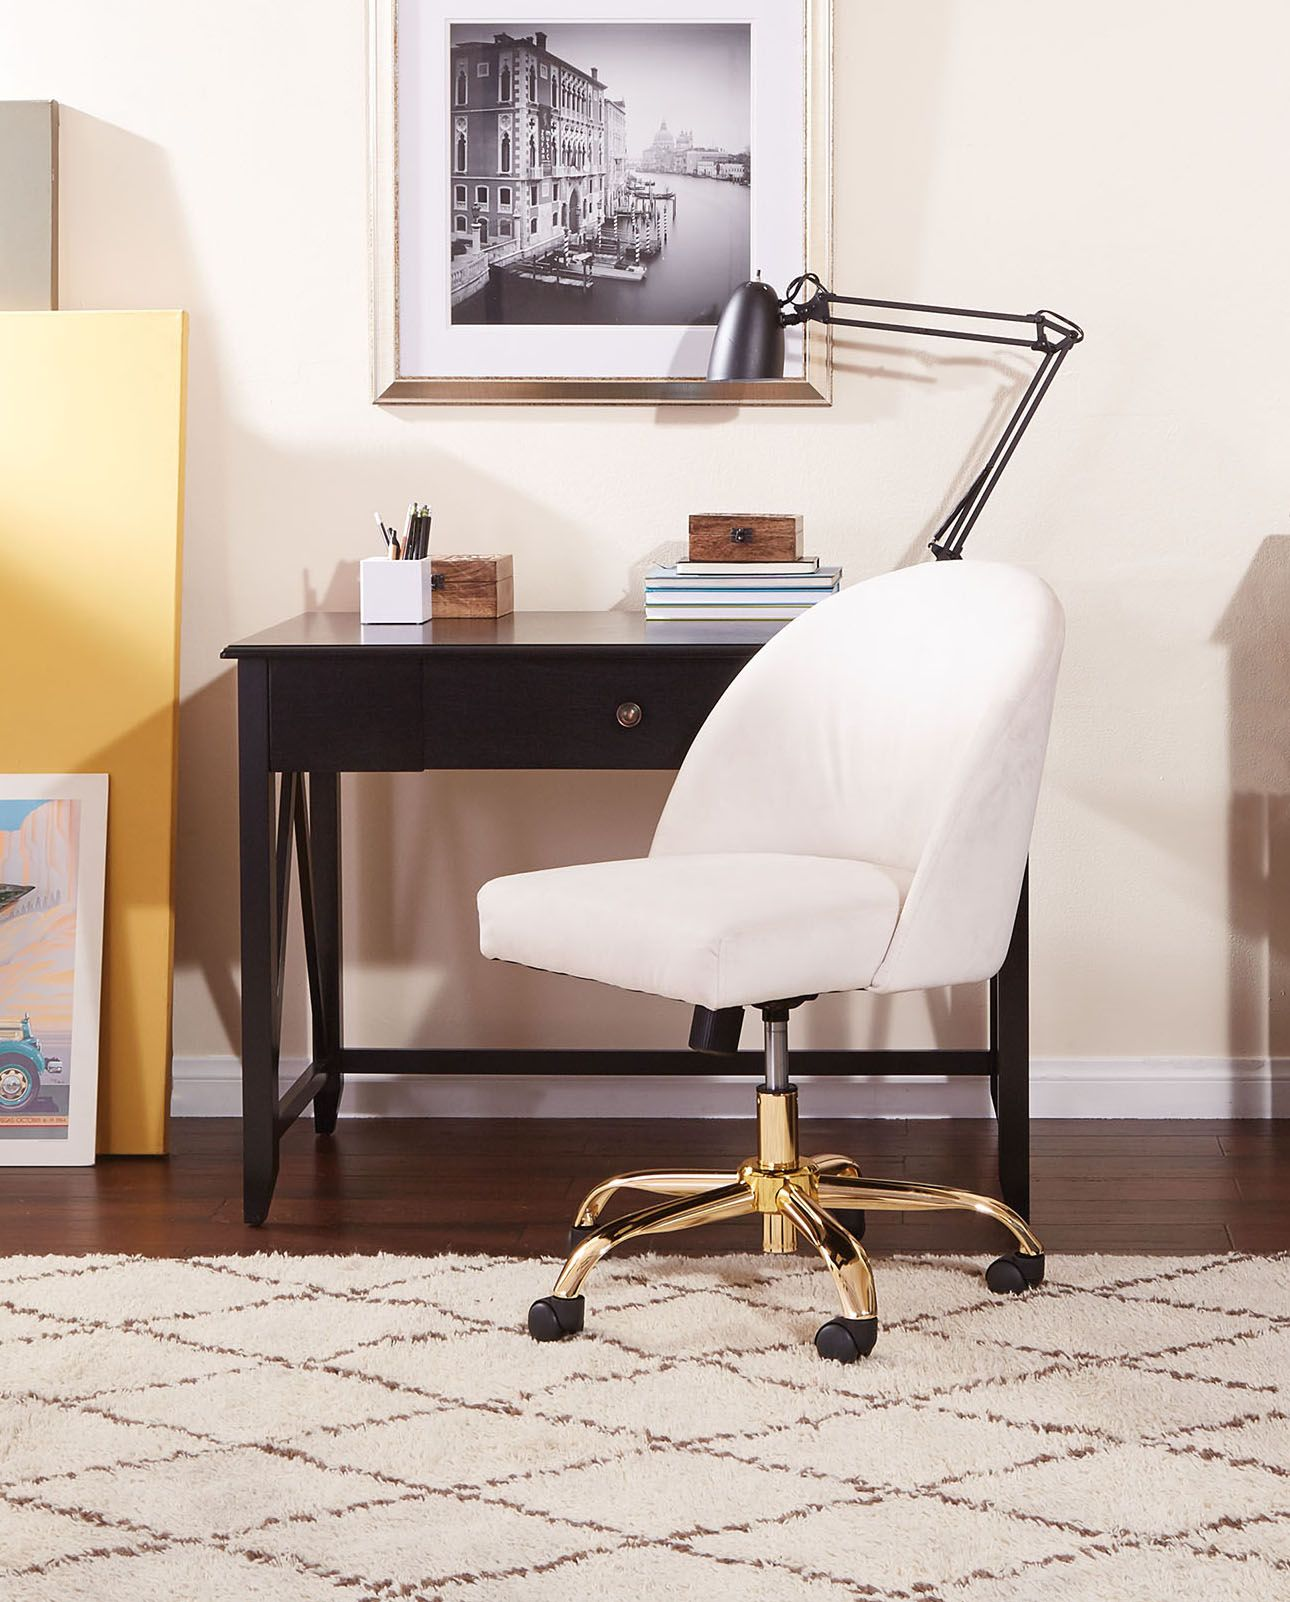 Explore Office Chairs, Accent Chairs, And More!